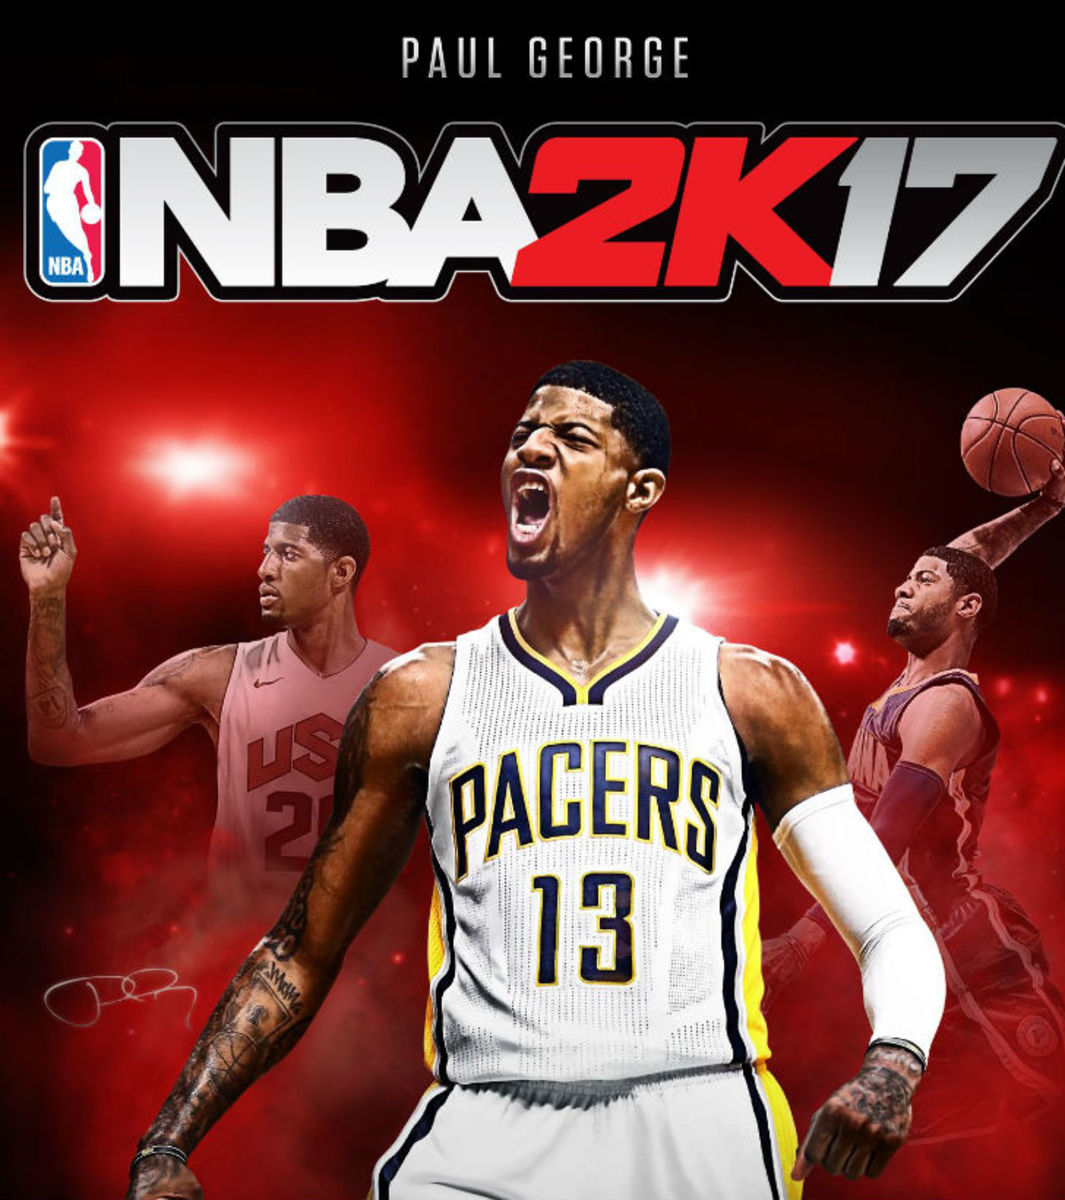 paul-george-nba2k17